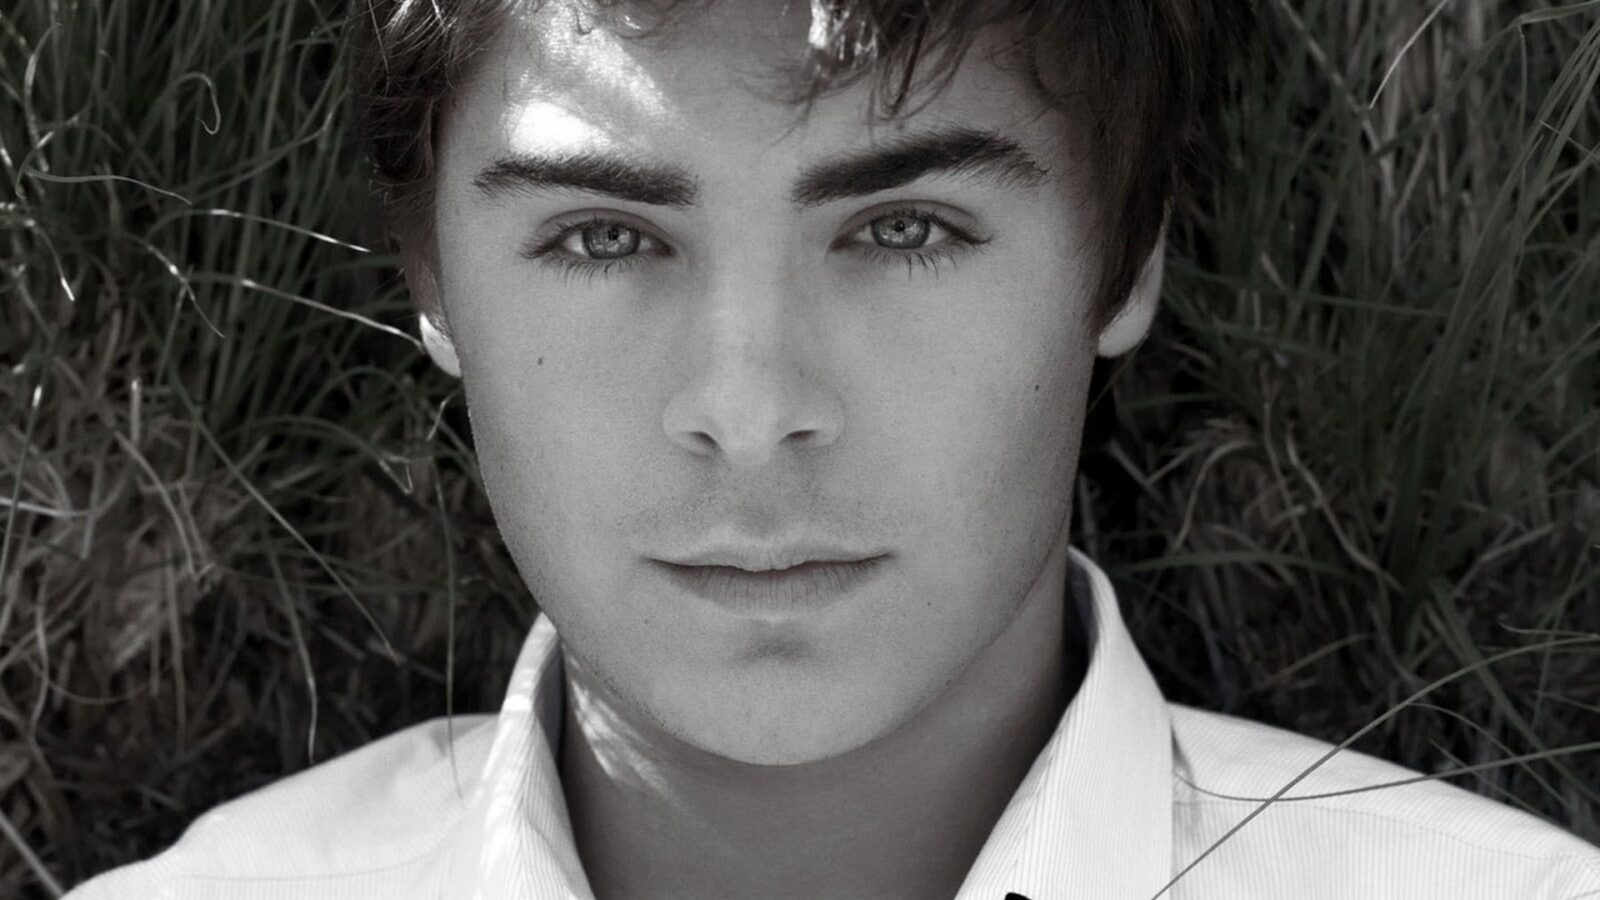 Image of young Zac Efron for iPhone